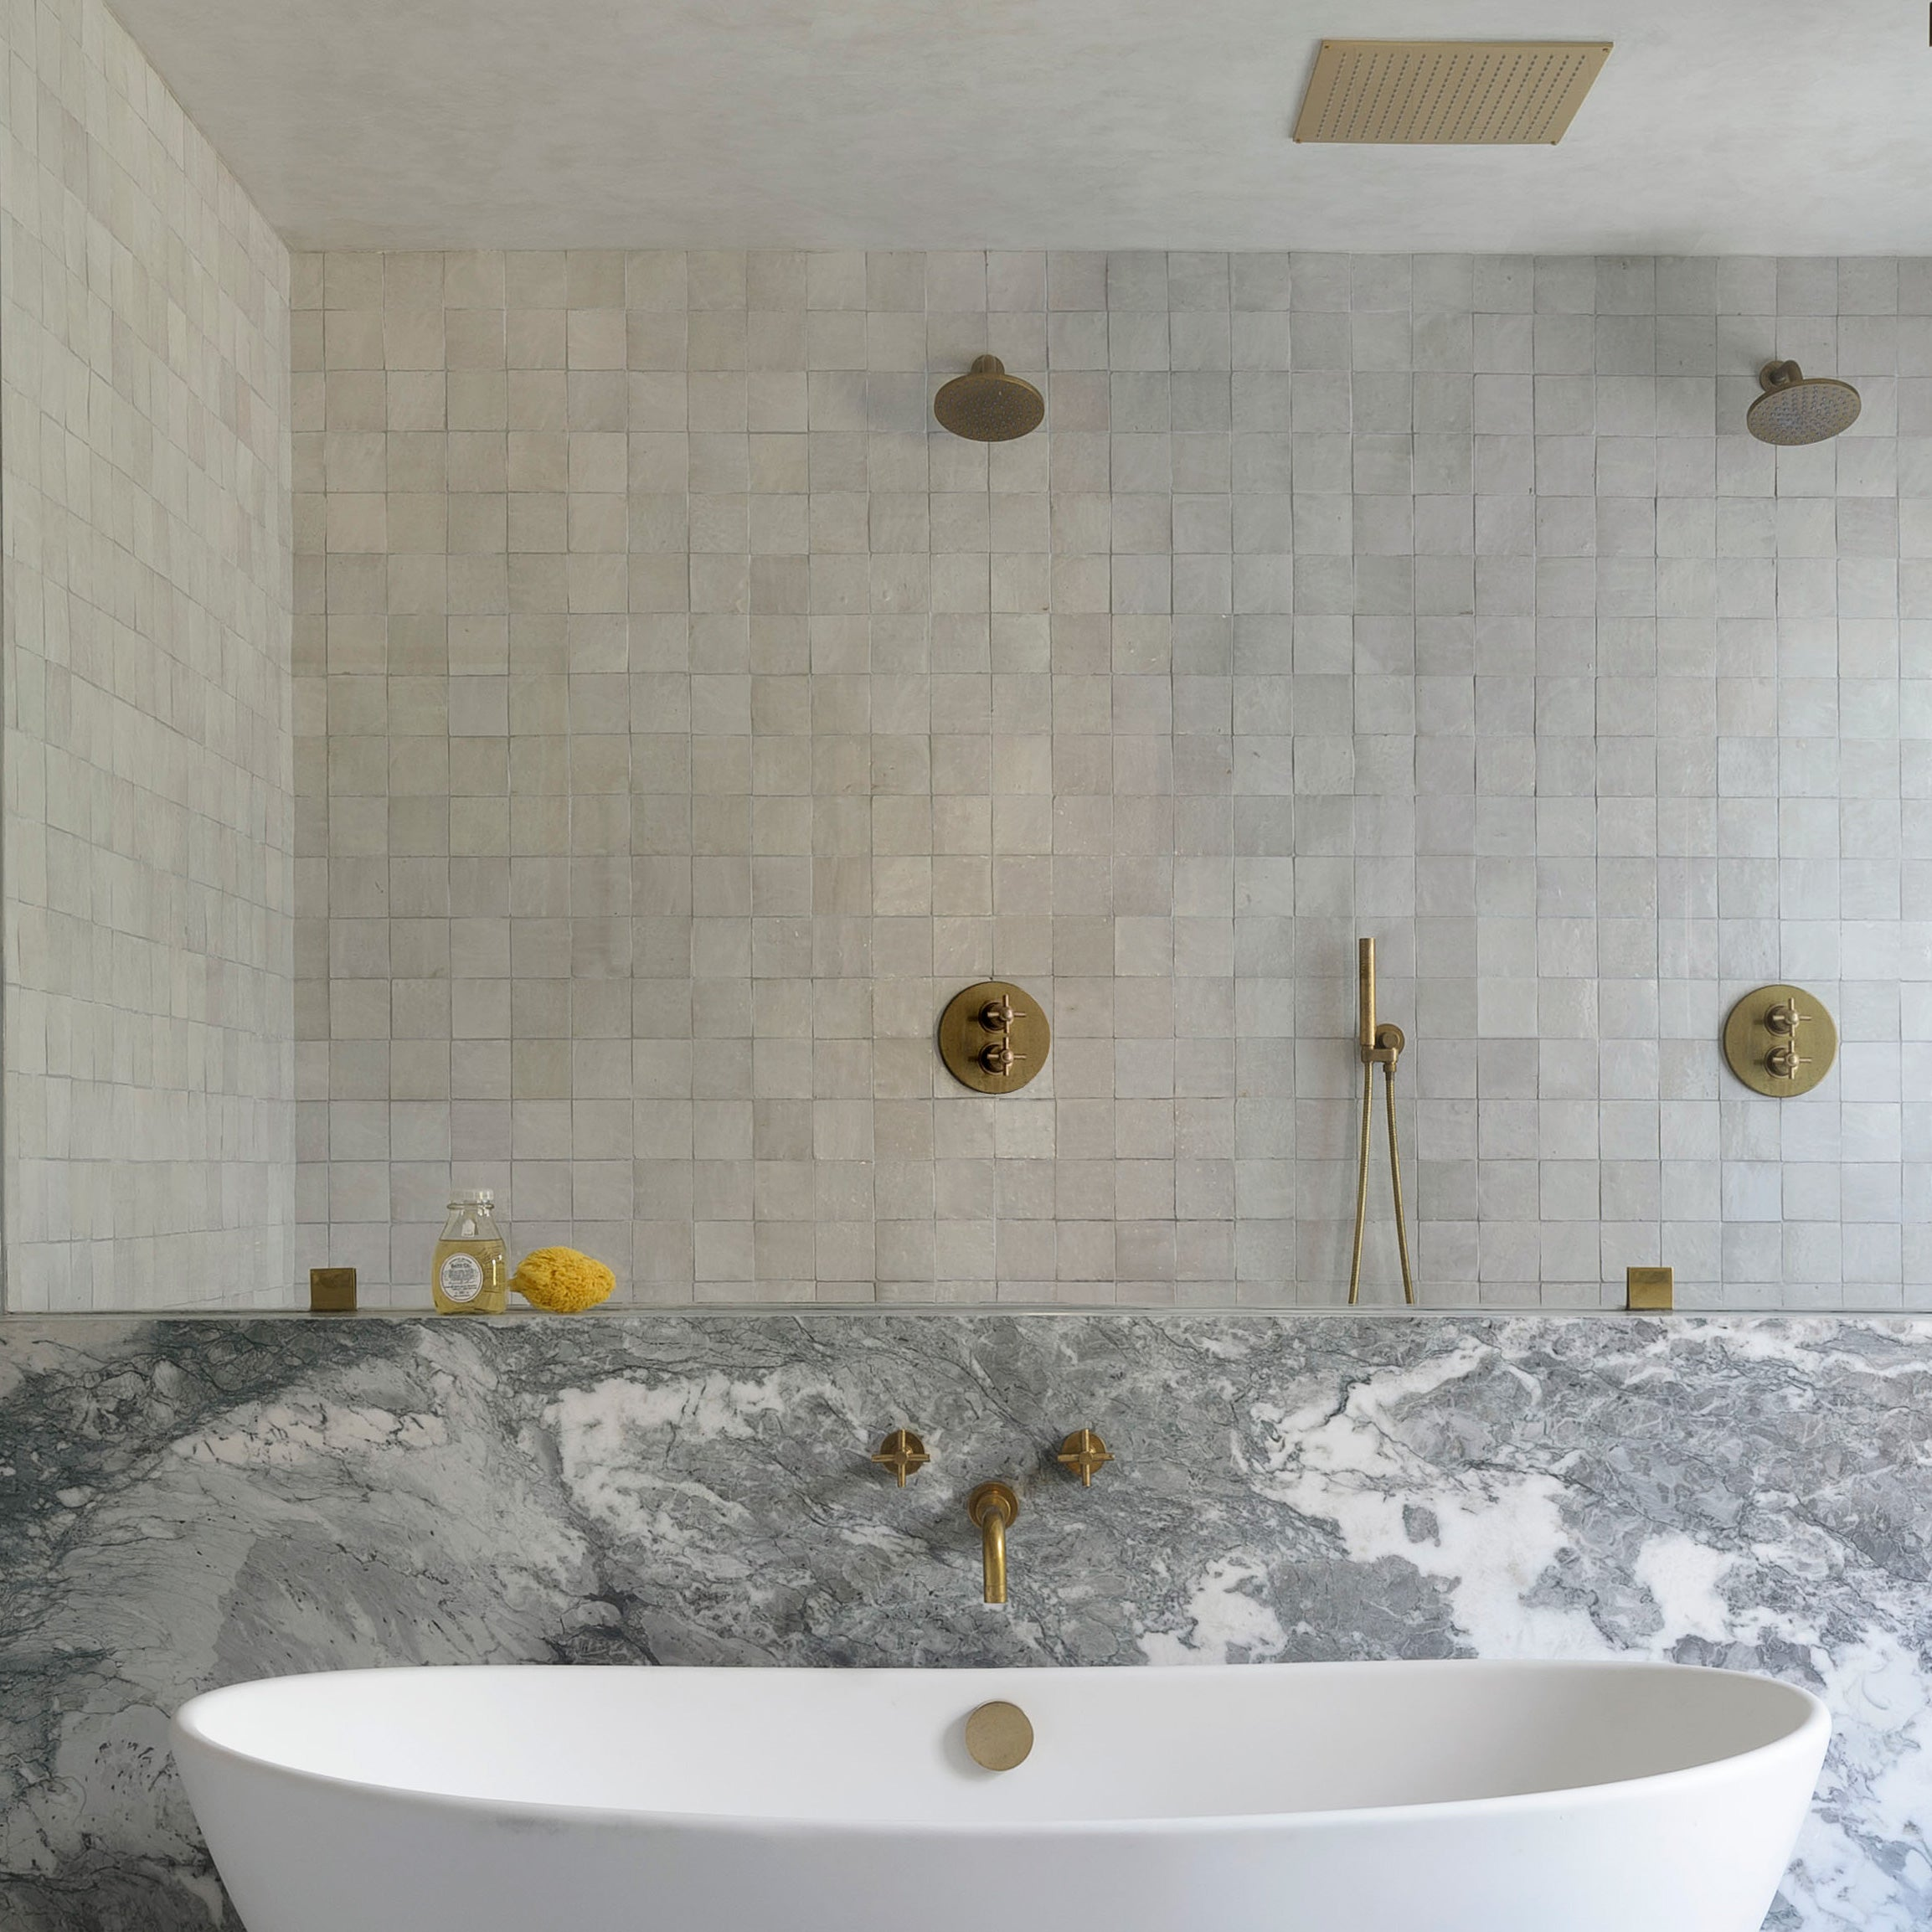 - Zellige: The Perfectly Imperfect Tile